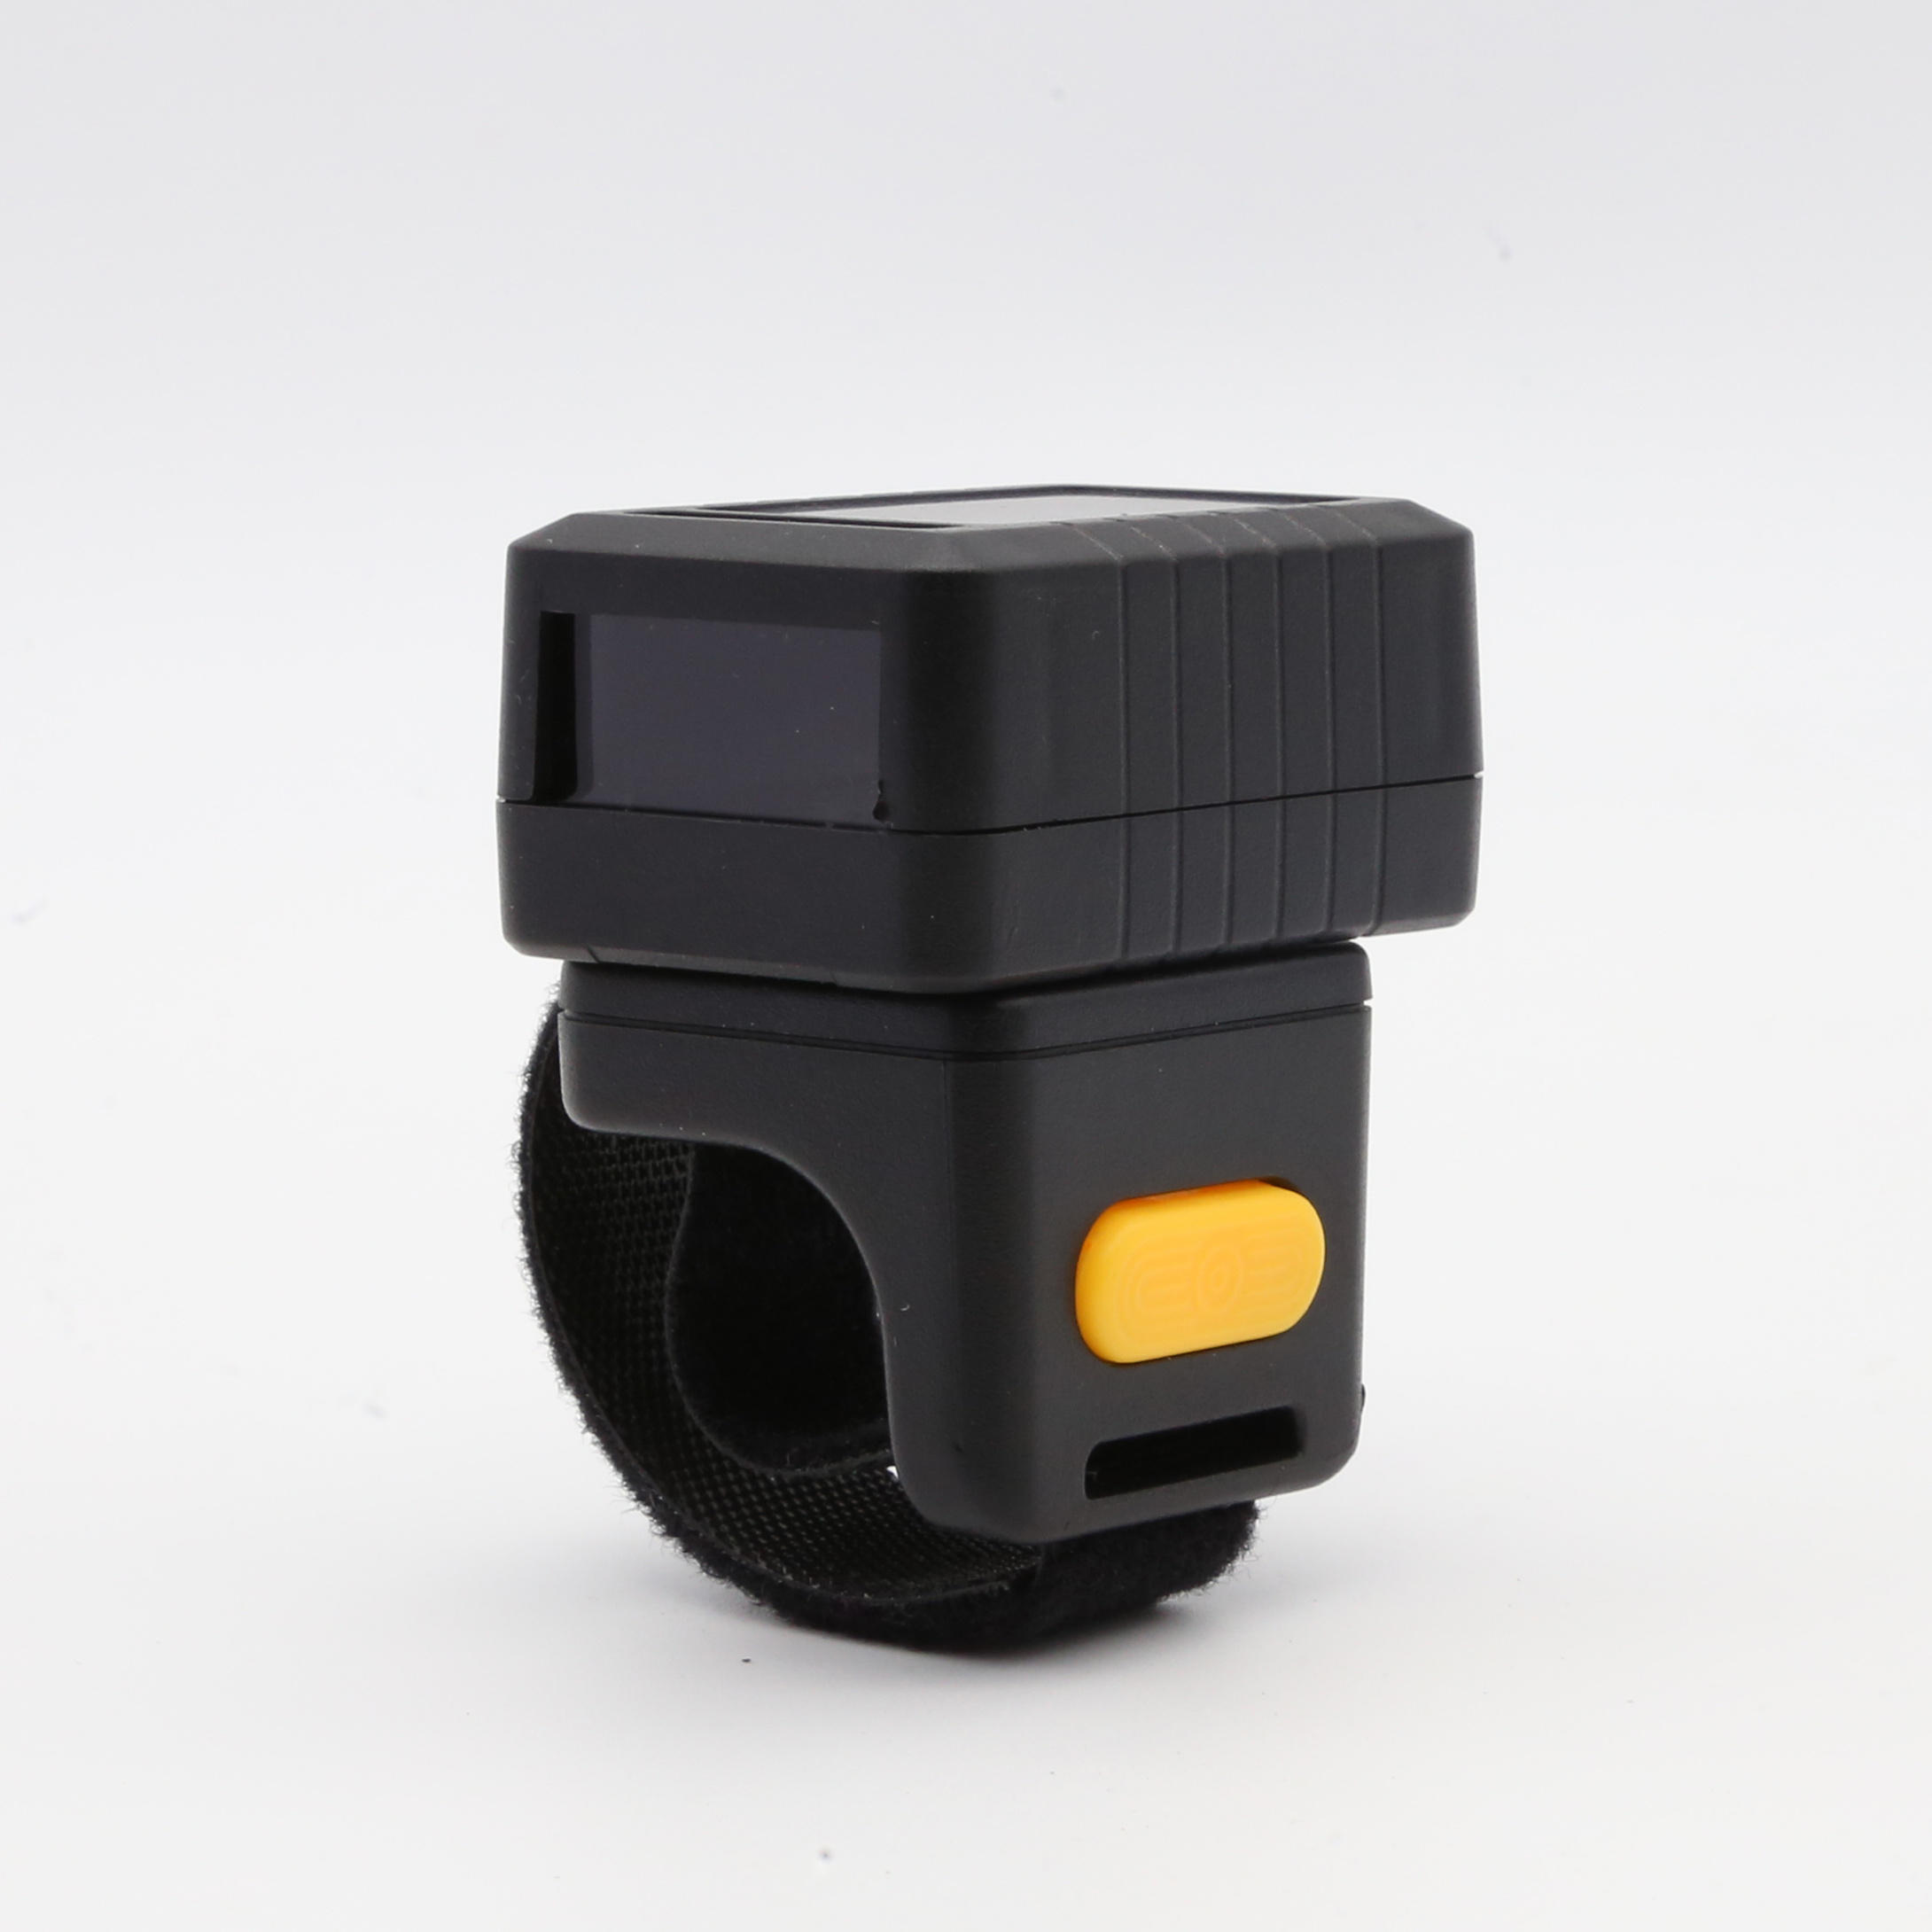 Shangchen SC-HL10 Barcode Scanner Two-dimensional Image Wireless bluetooth Wearable Finger Ring Barcode Scanner